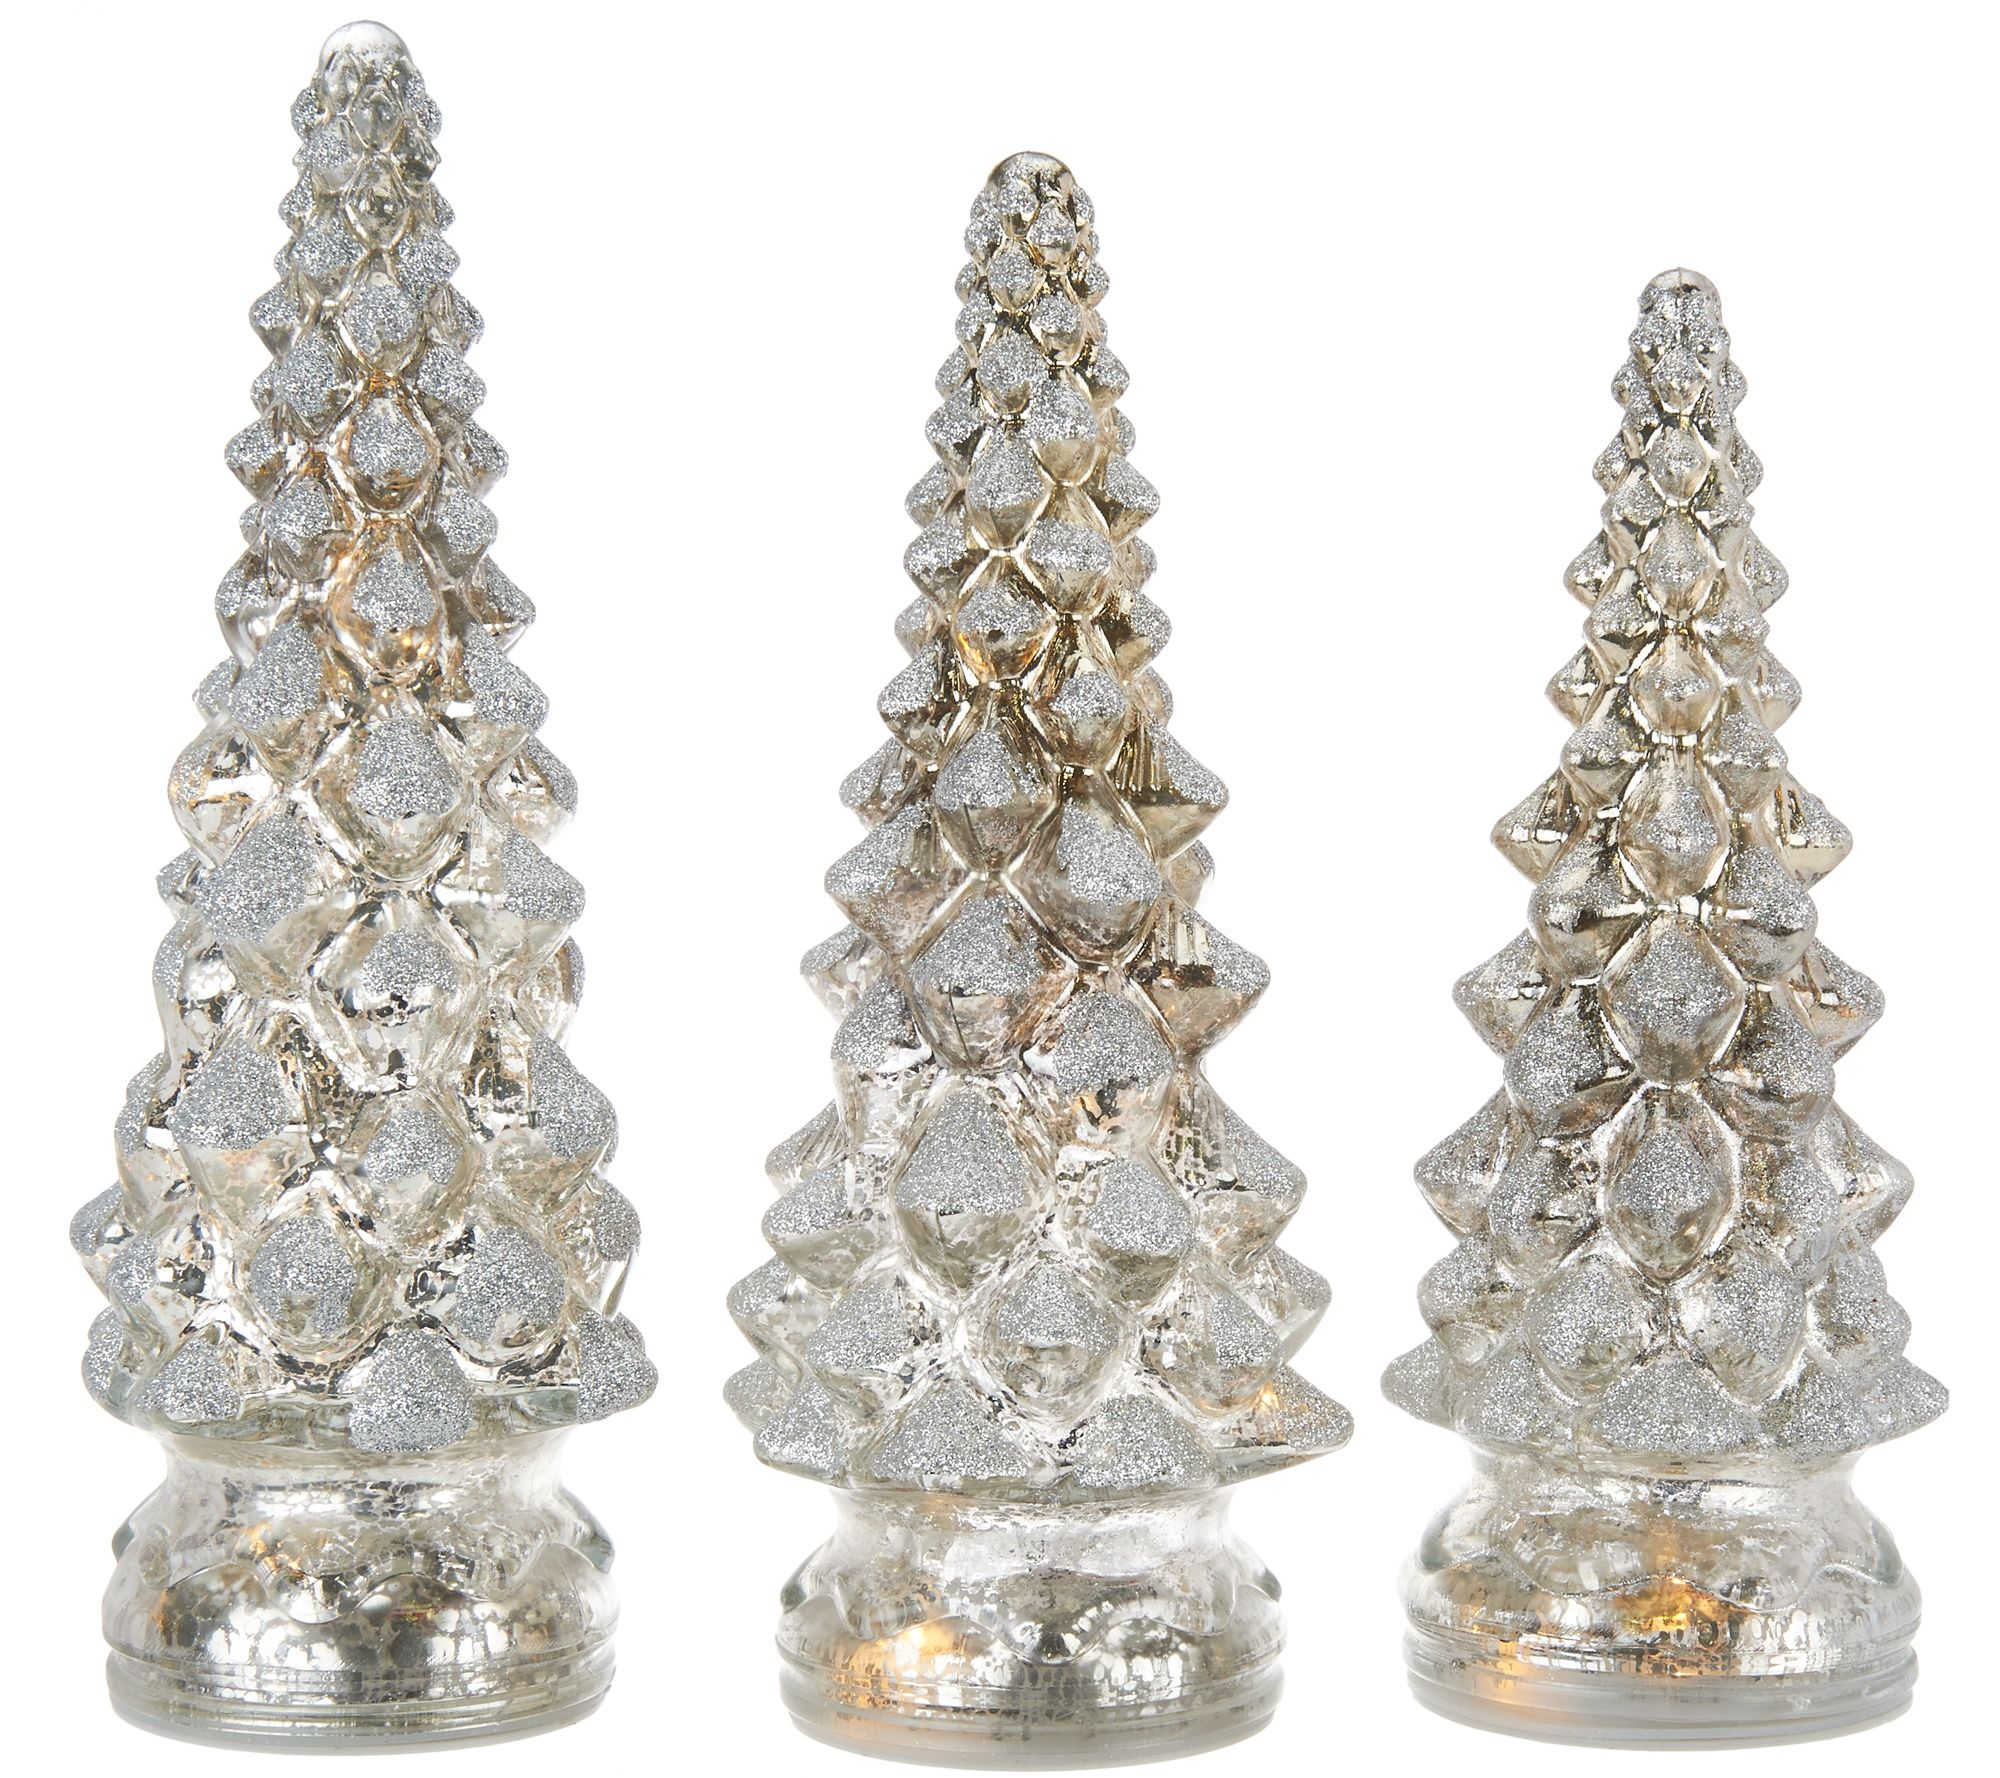 Set of 3 Lit Twinkling Mercury Glass Trees by Valerie - Page 1 ...